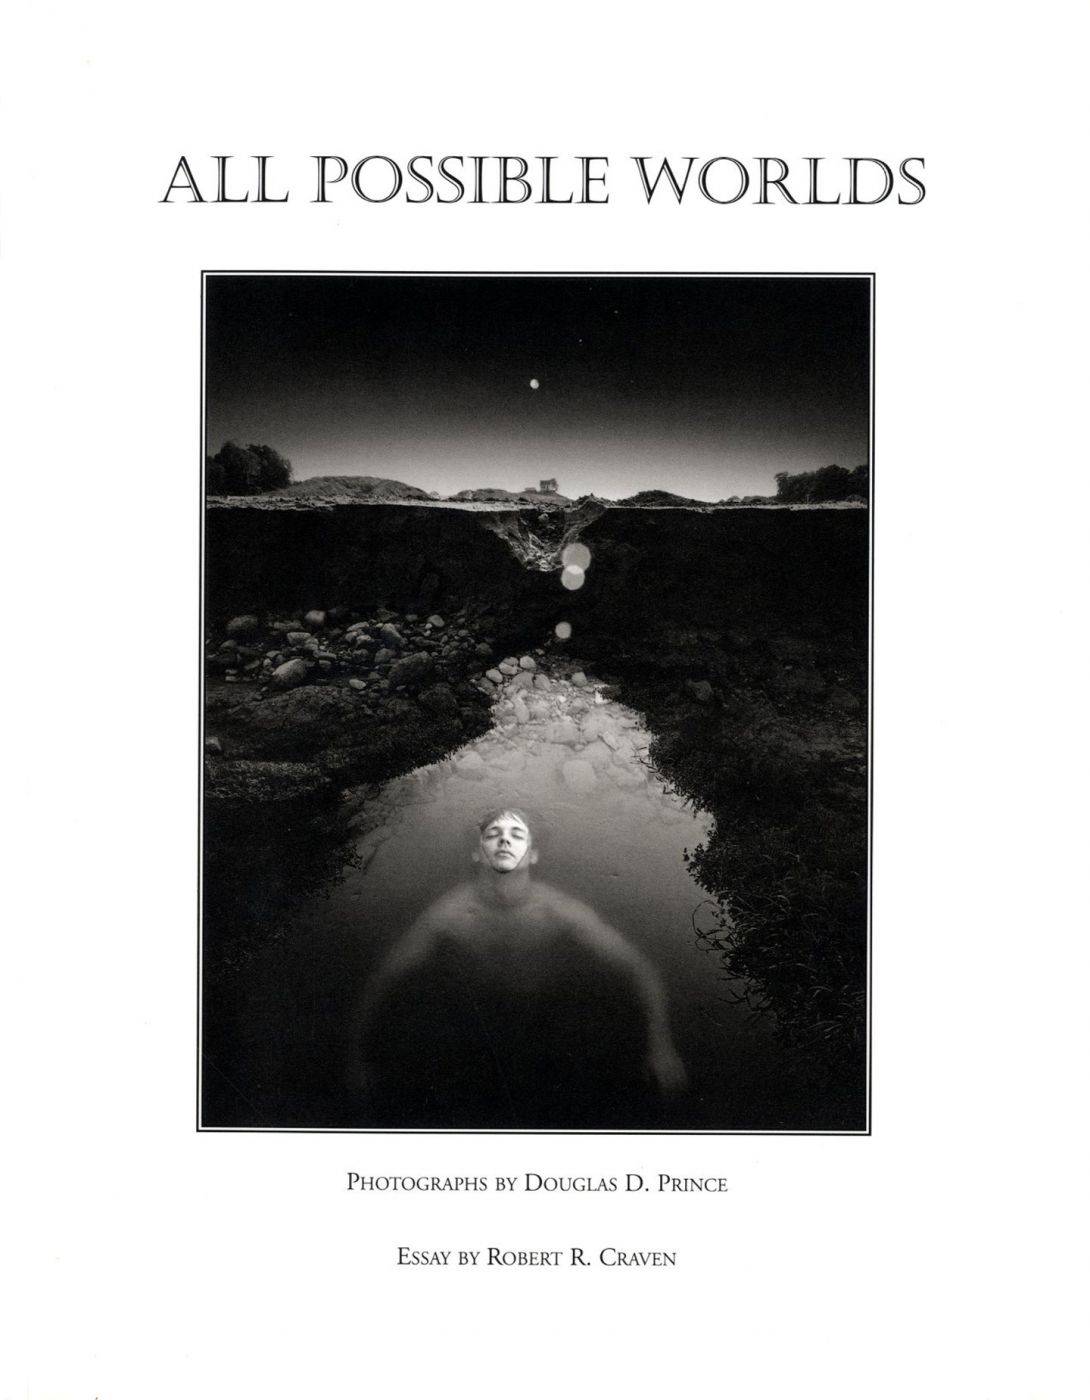 Douglas Prince: All Possible Worlds